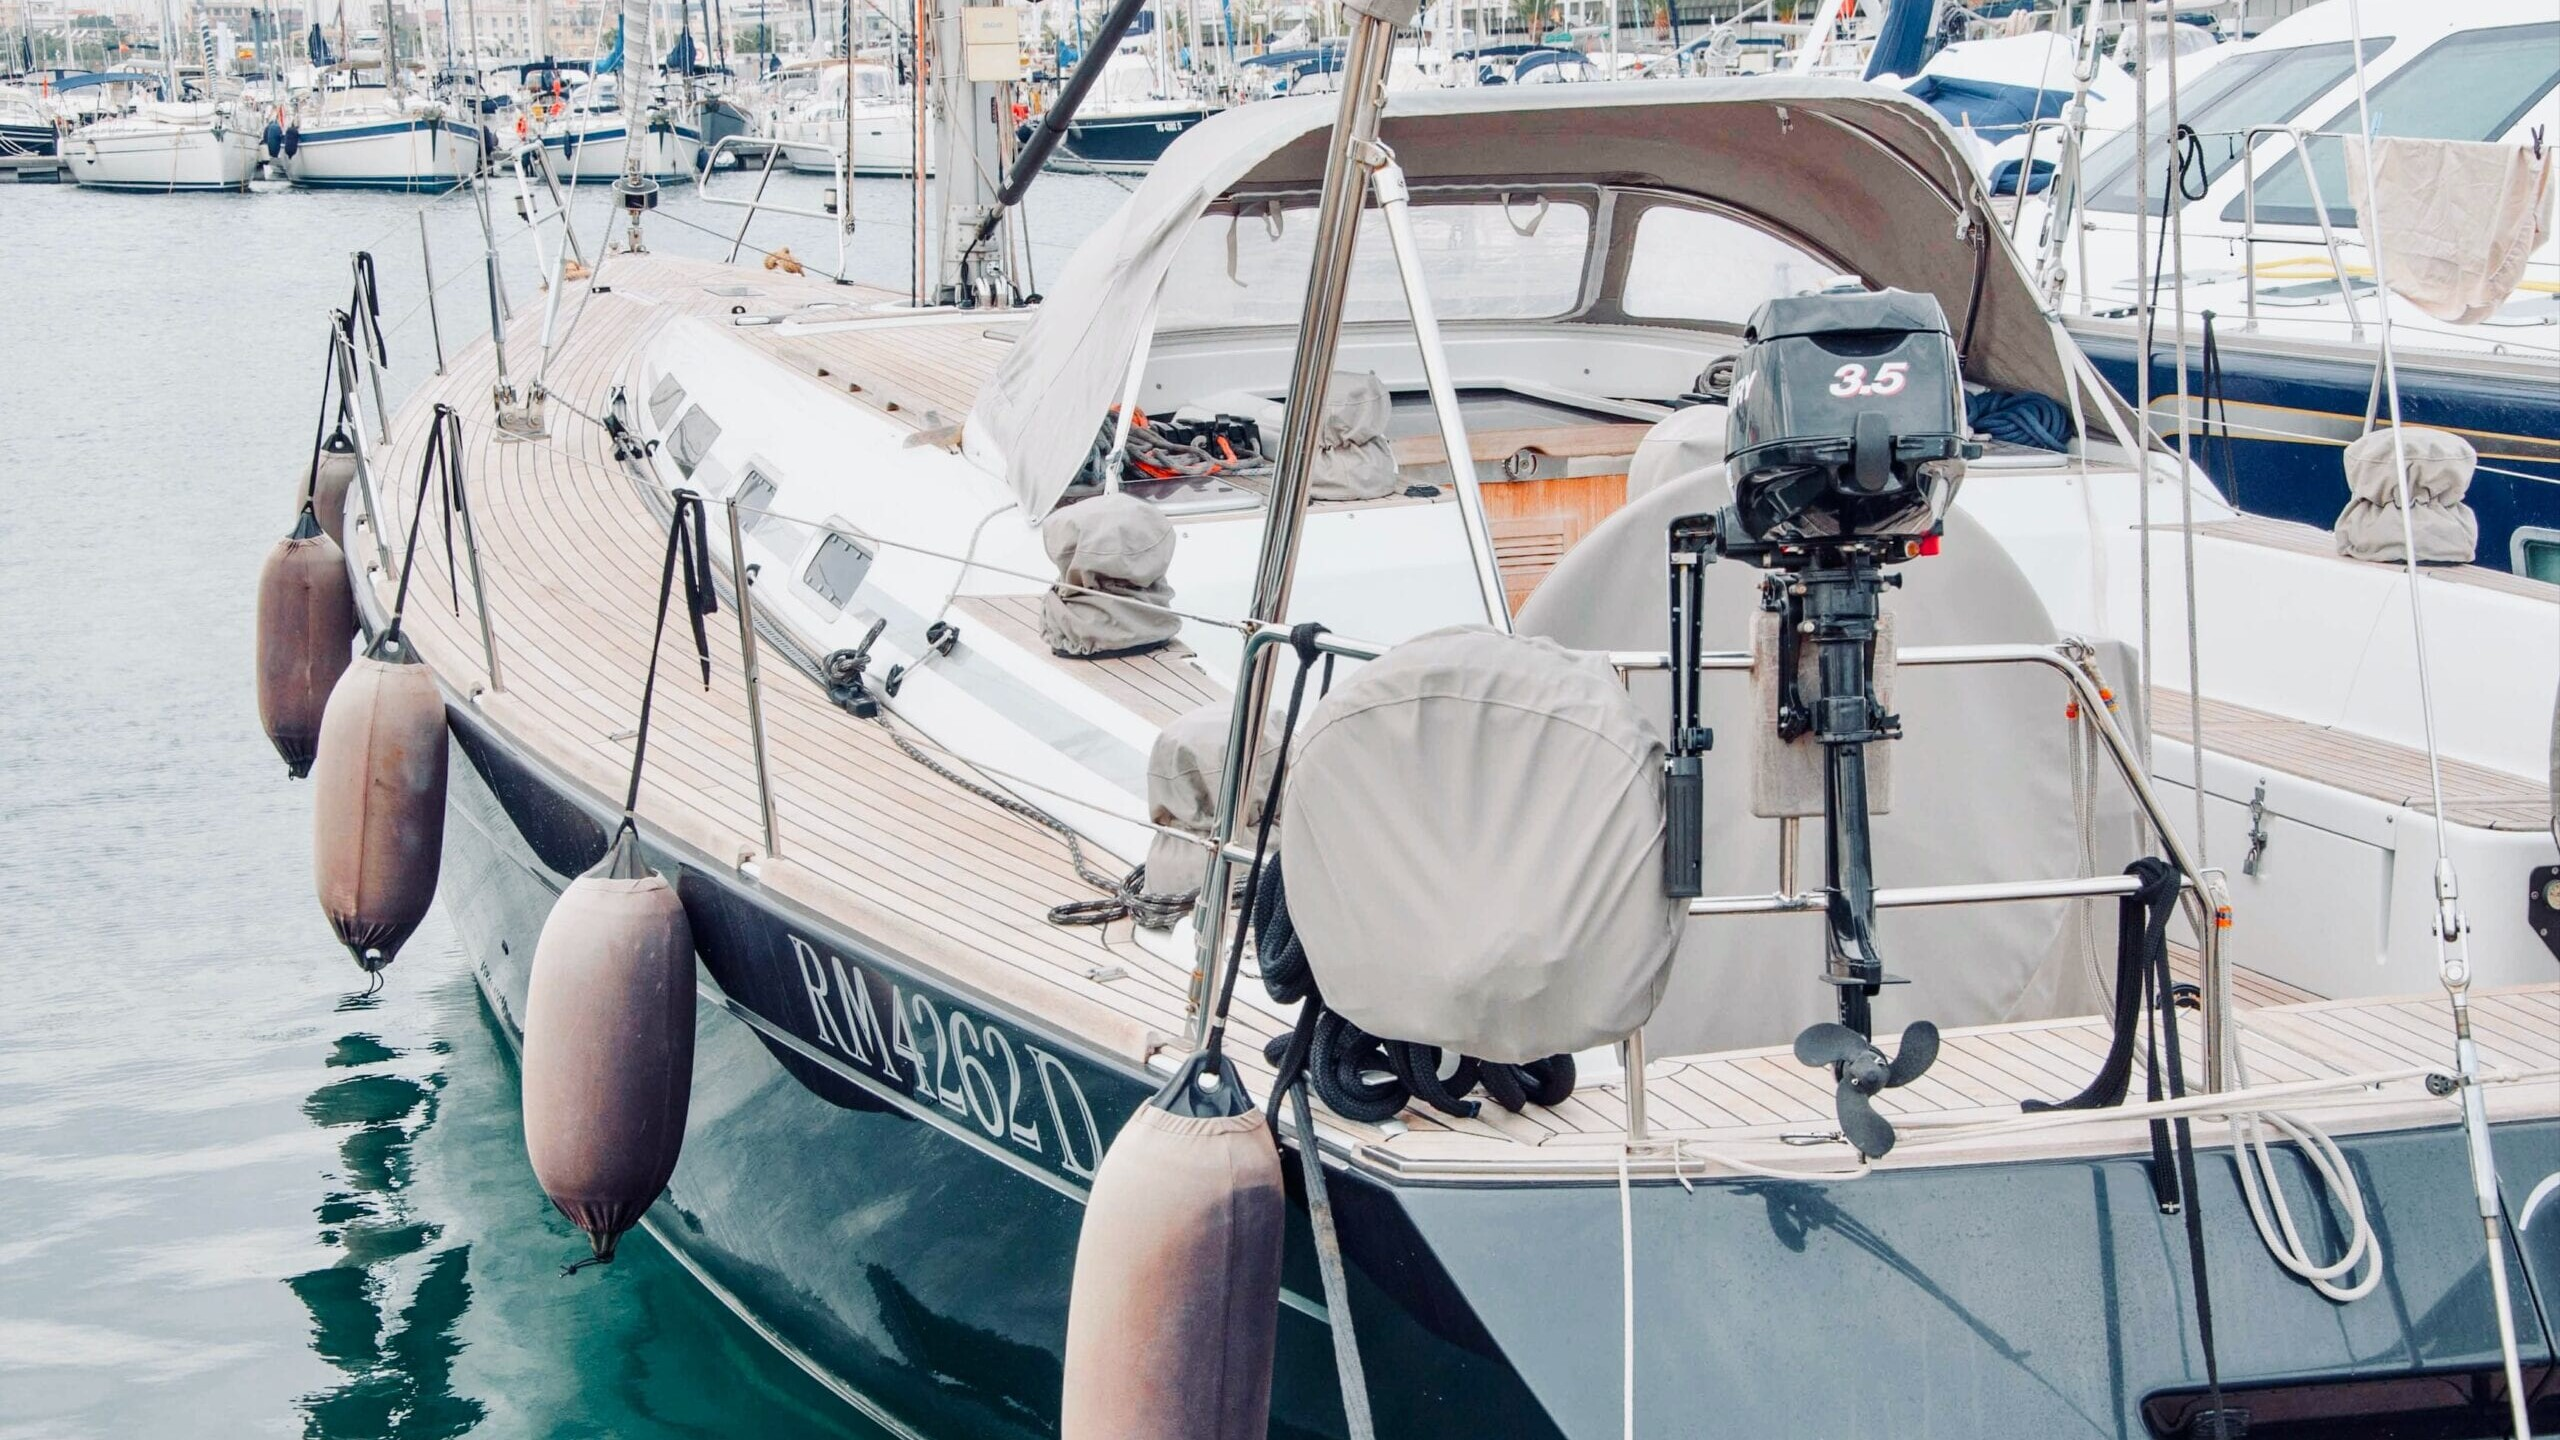 How to Find the Best Devices for Your NMEA 2000 System